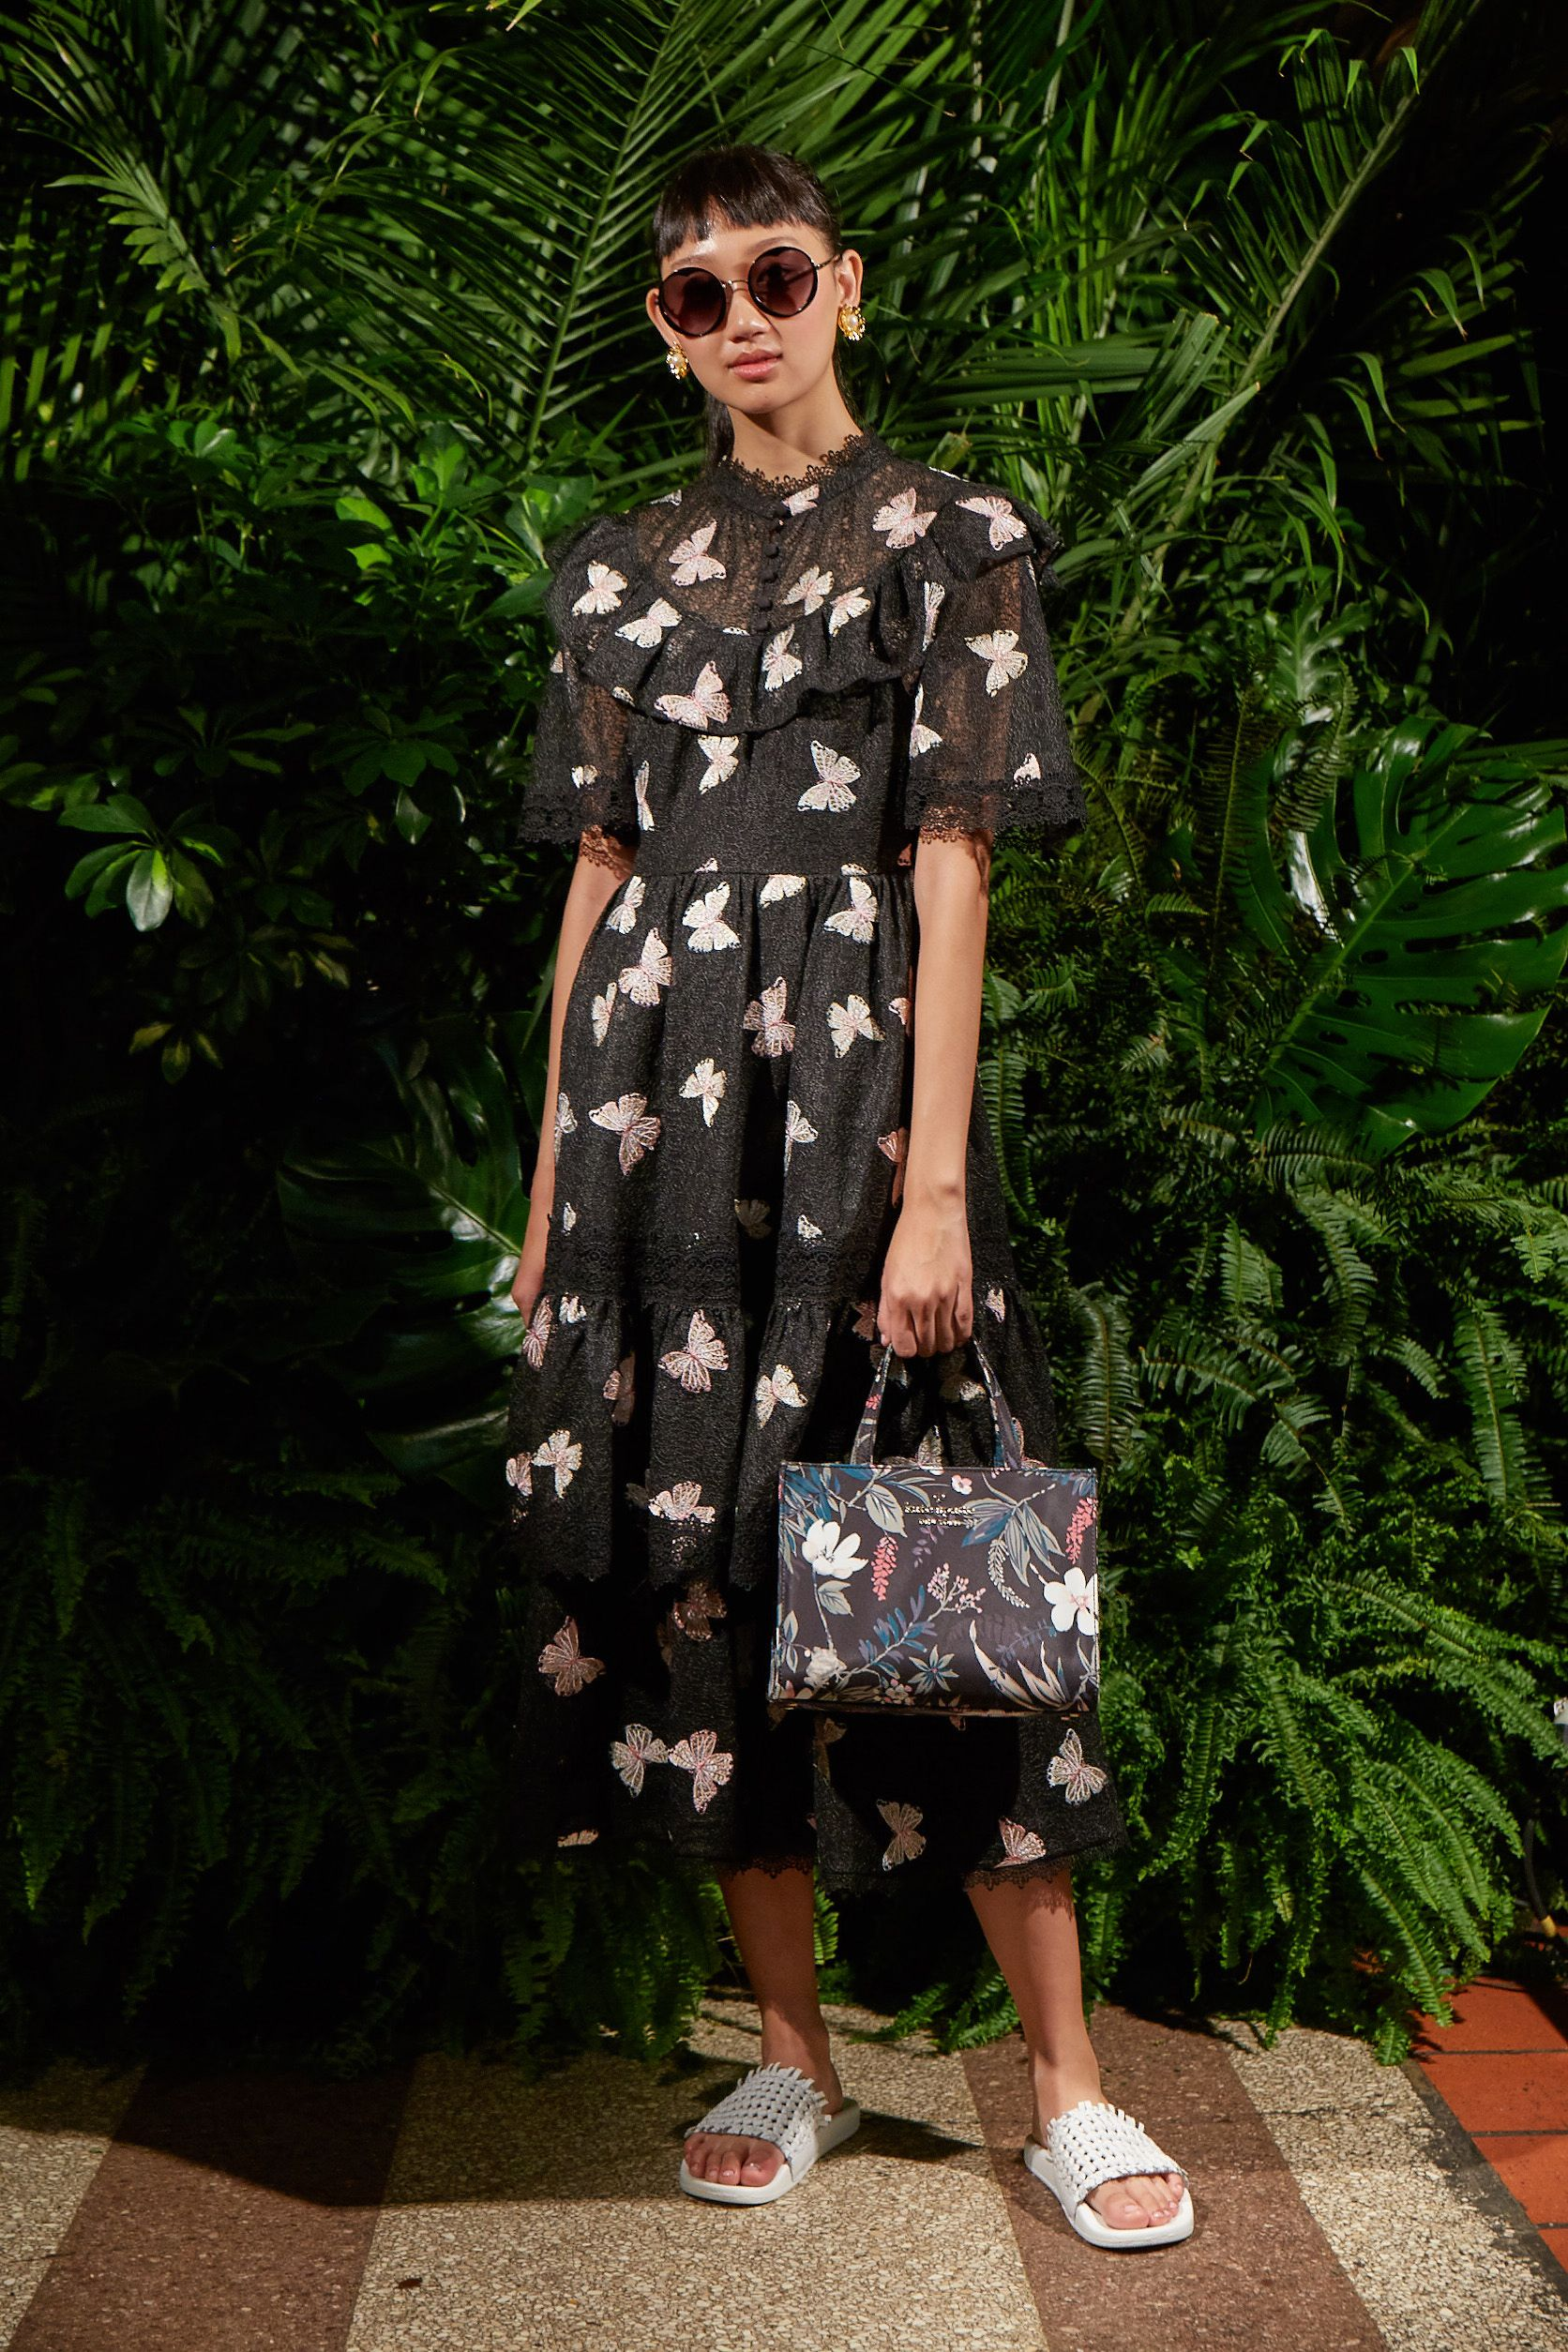 895182d03c Kate Spade New York Spring 2018 Ready-to-Wear Fashion Show